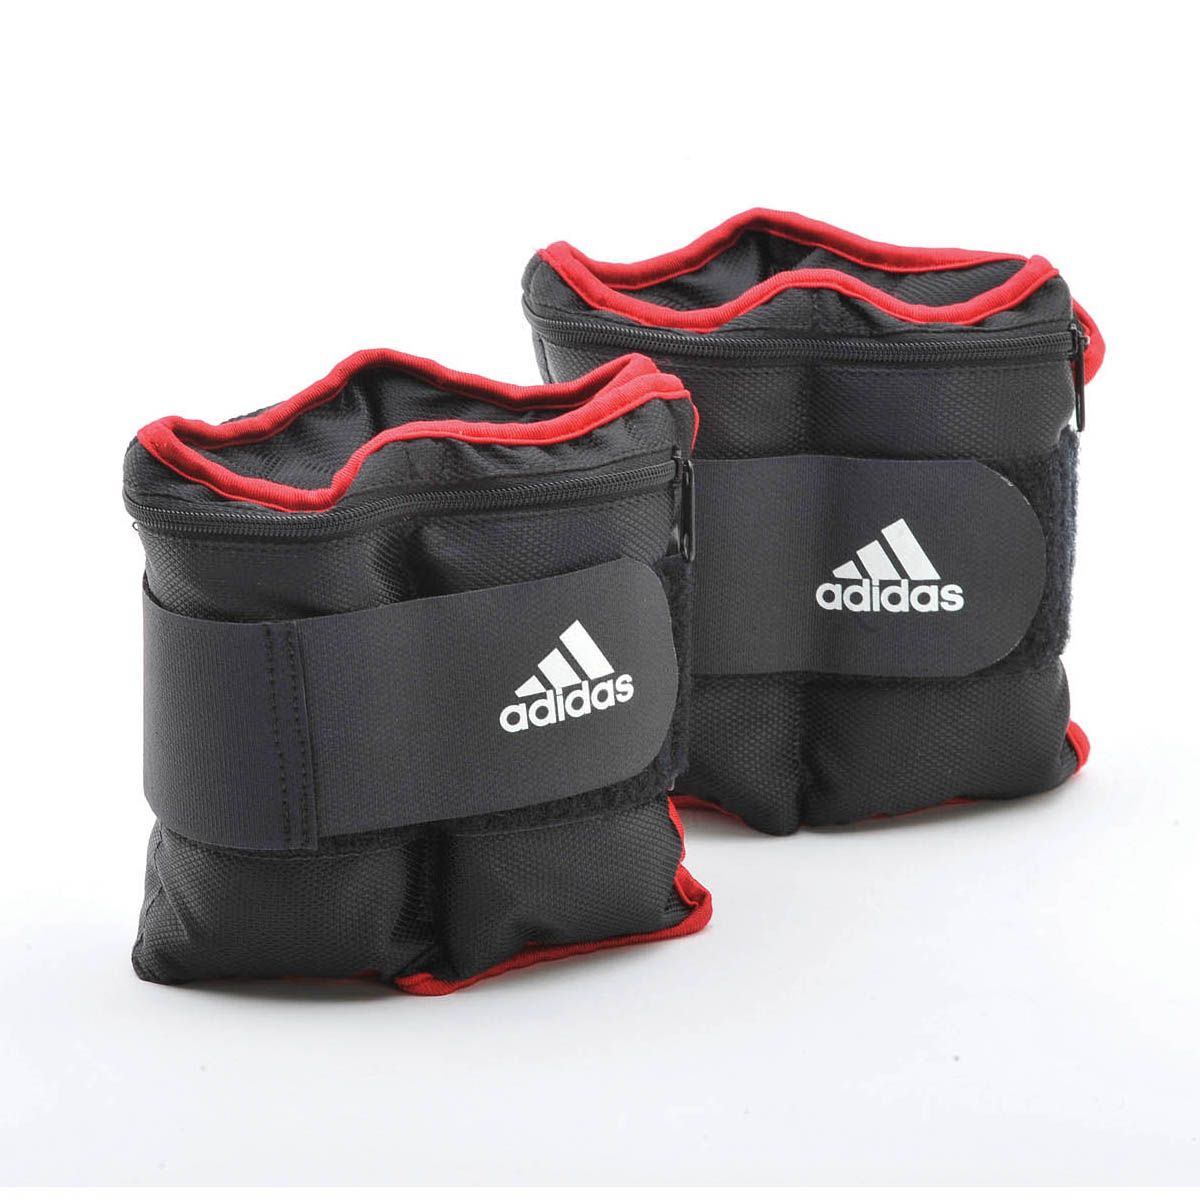 Adidas Adjustable Ankle Wrist Weights  2 x 1kg